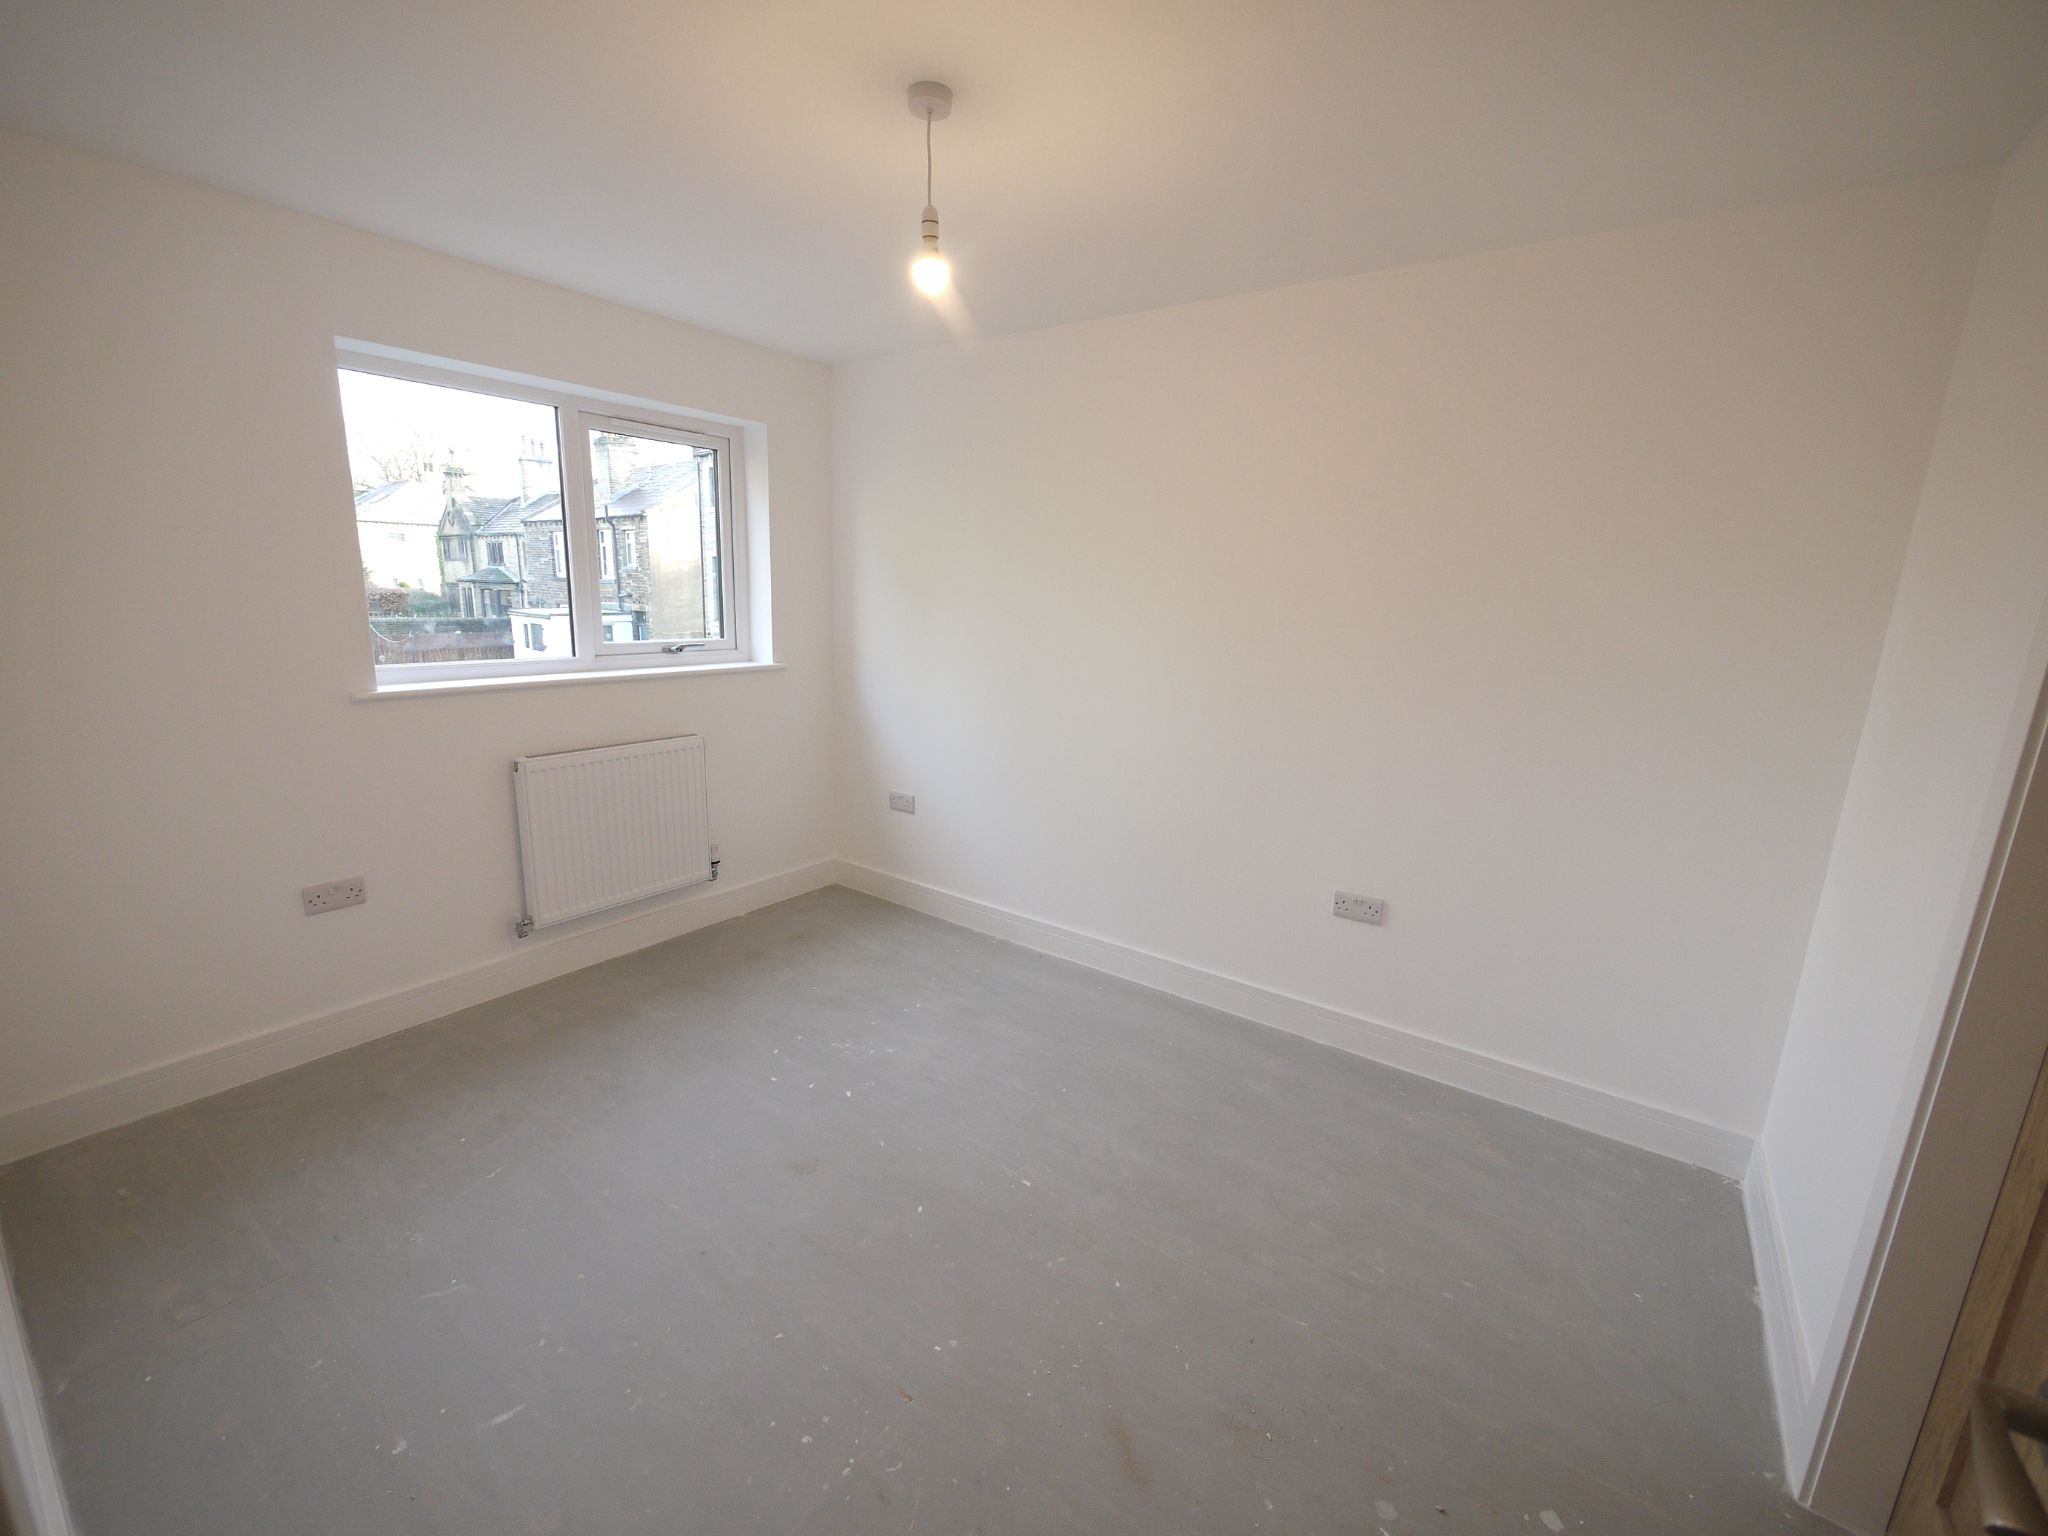 3 bedroom detached house SSTC in Brighouse - Photograph 5.